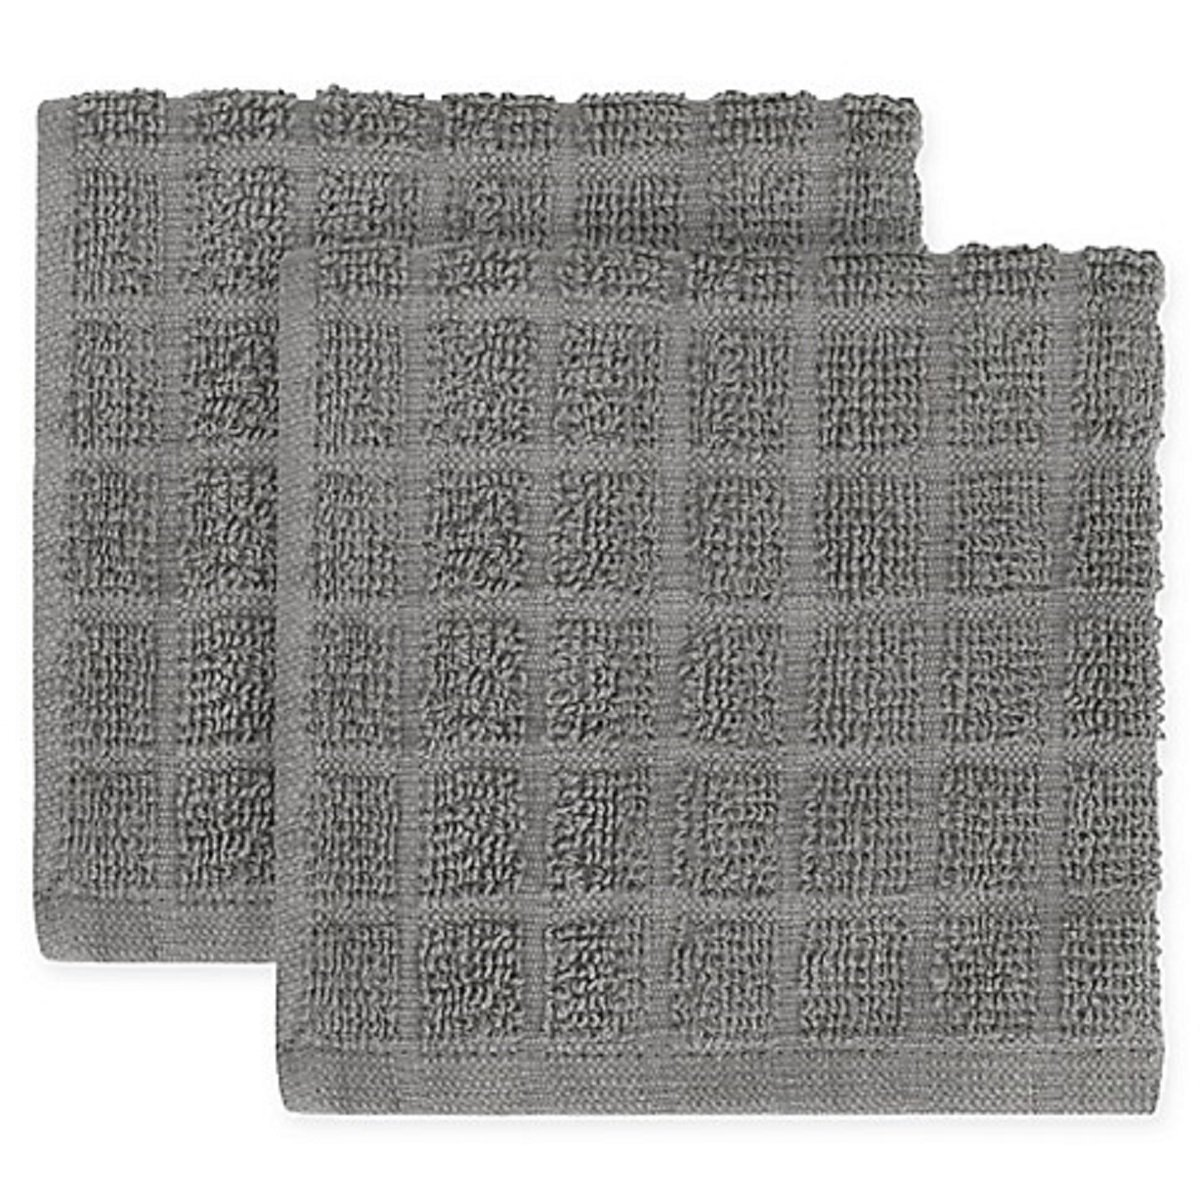 KitchenSmart Colors 2-Pack Solid Windowpane Dish Cloth in Grey